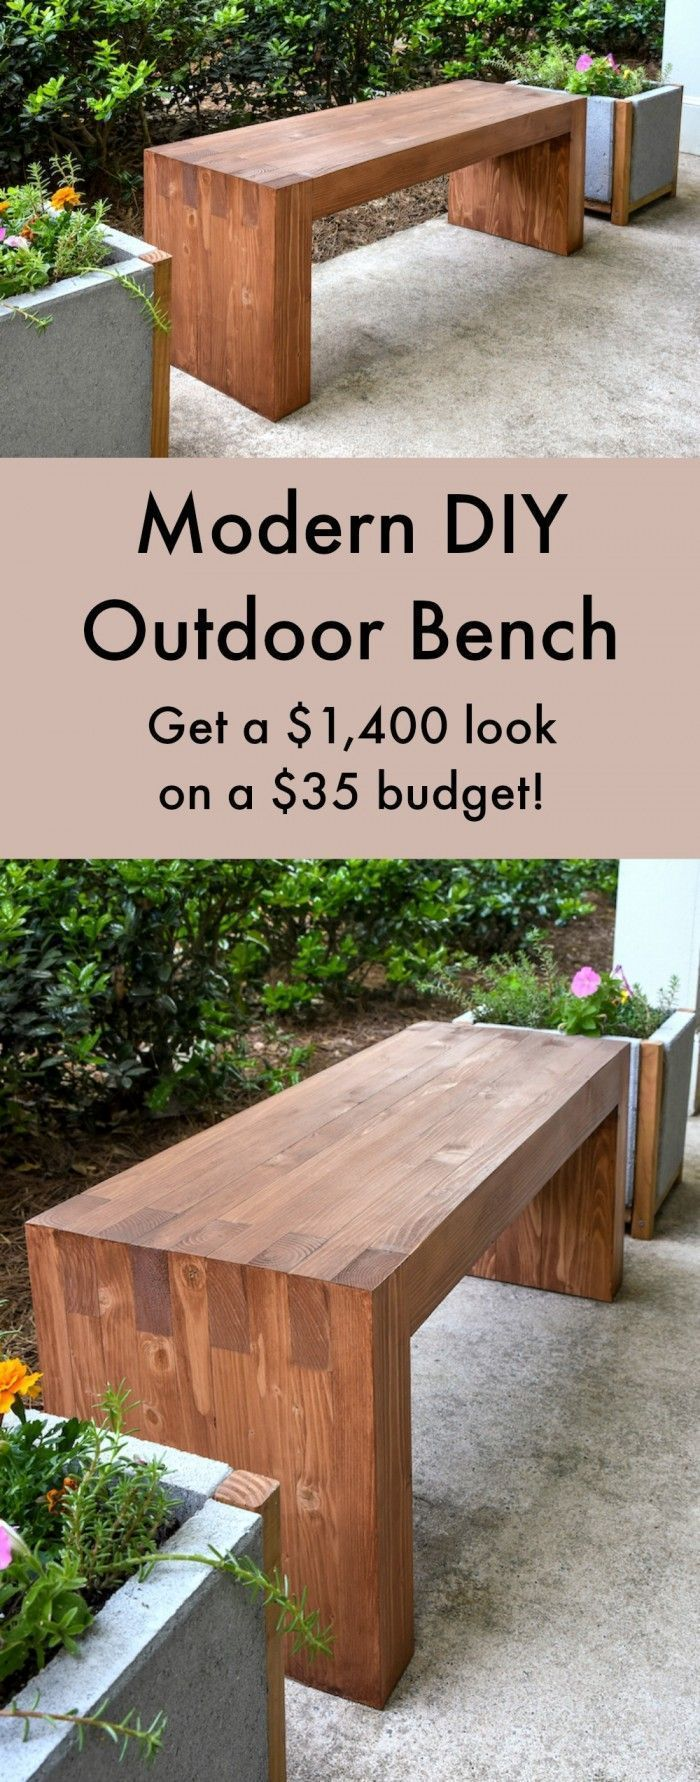 This easy modern DIY outdoor bench was